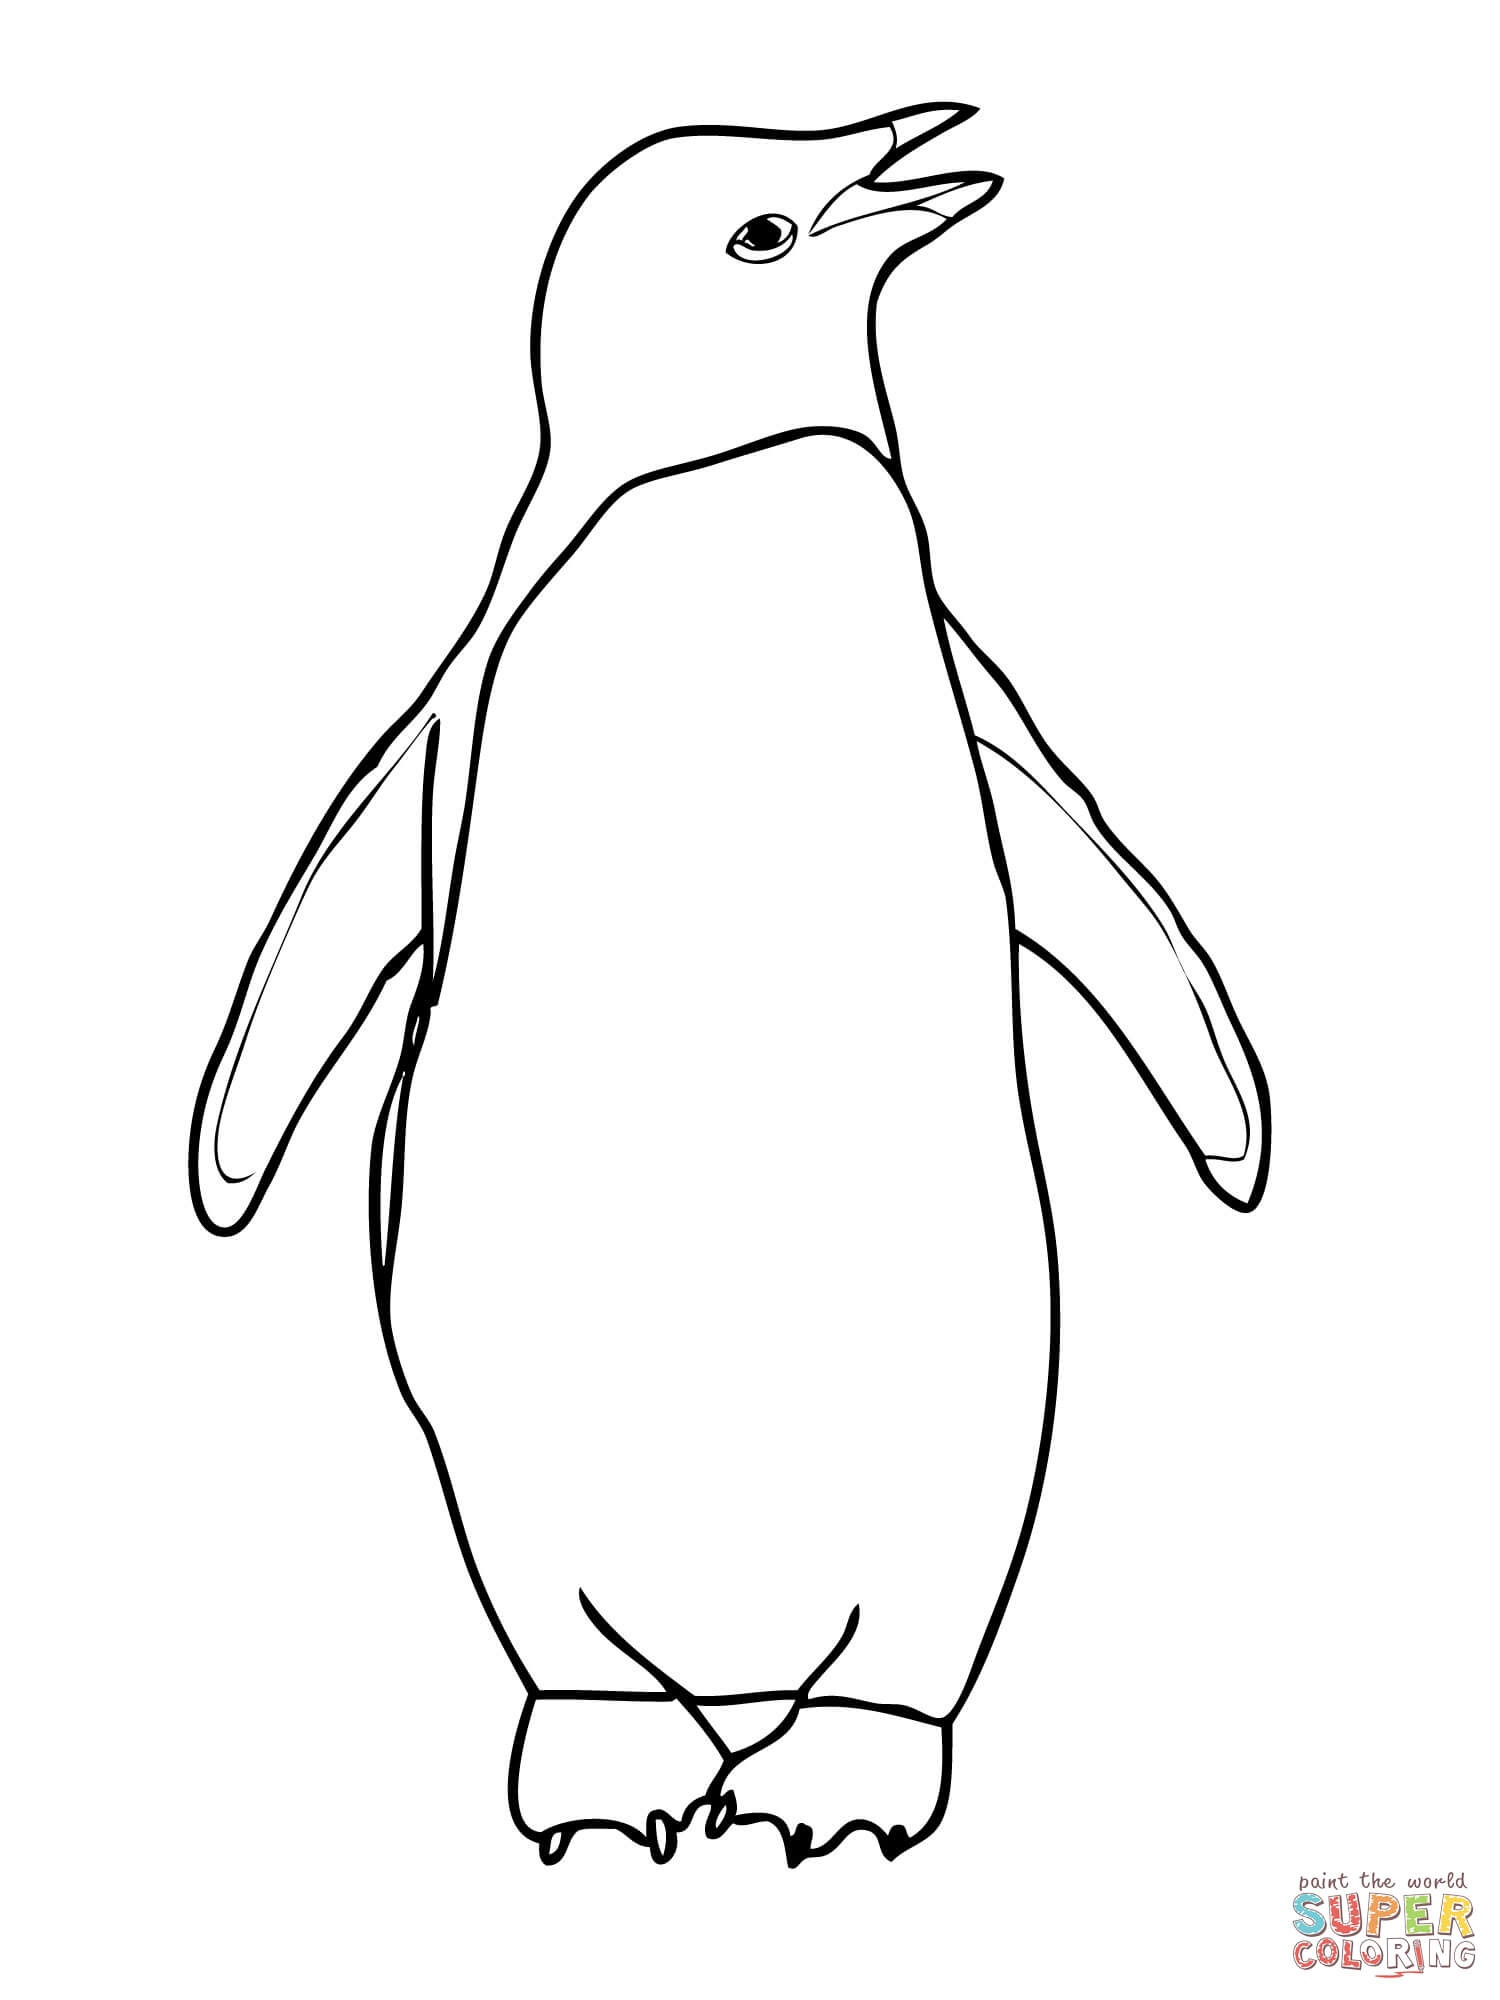 Printable Pictures Of Penguins Group With 84+ Items - Free Printable Penguin Books